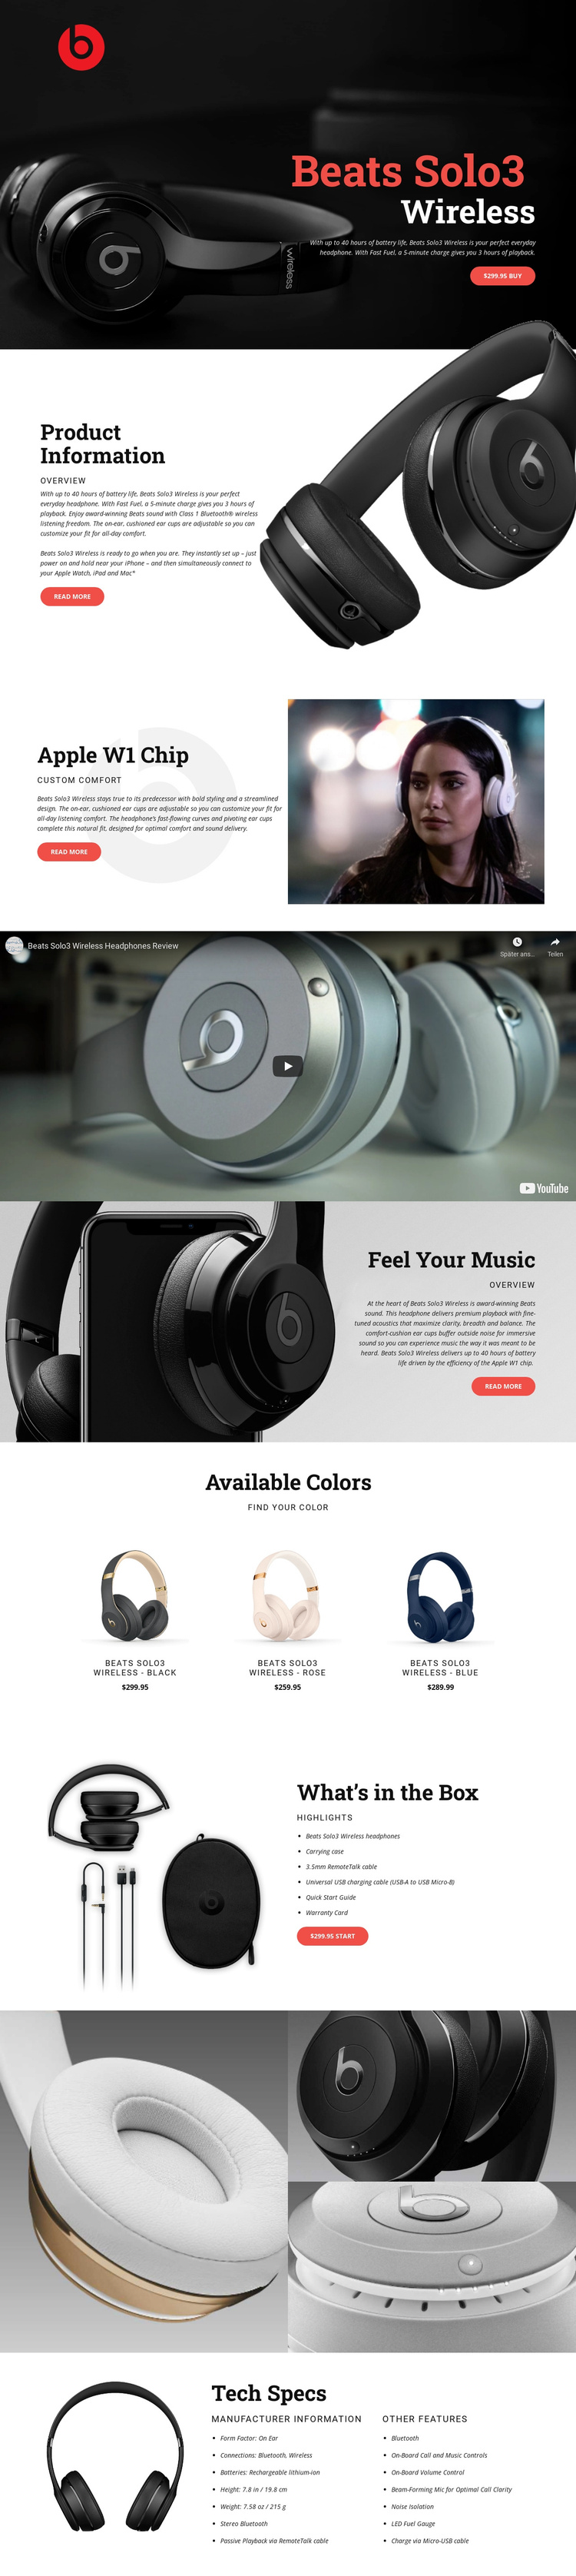 Outstanding quality of music Joomla Template